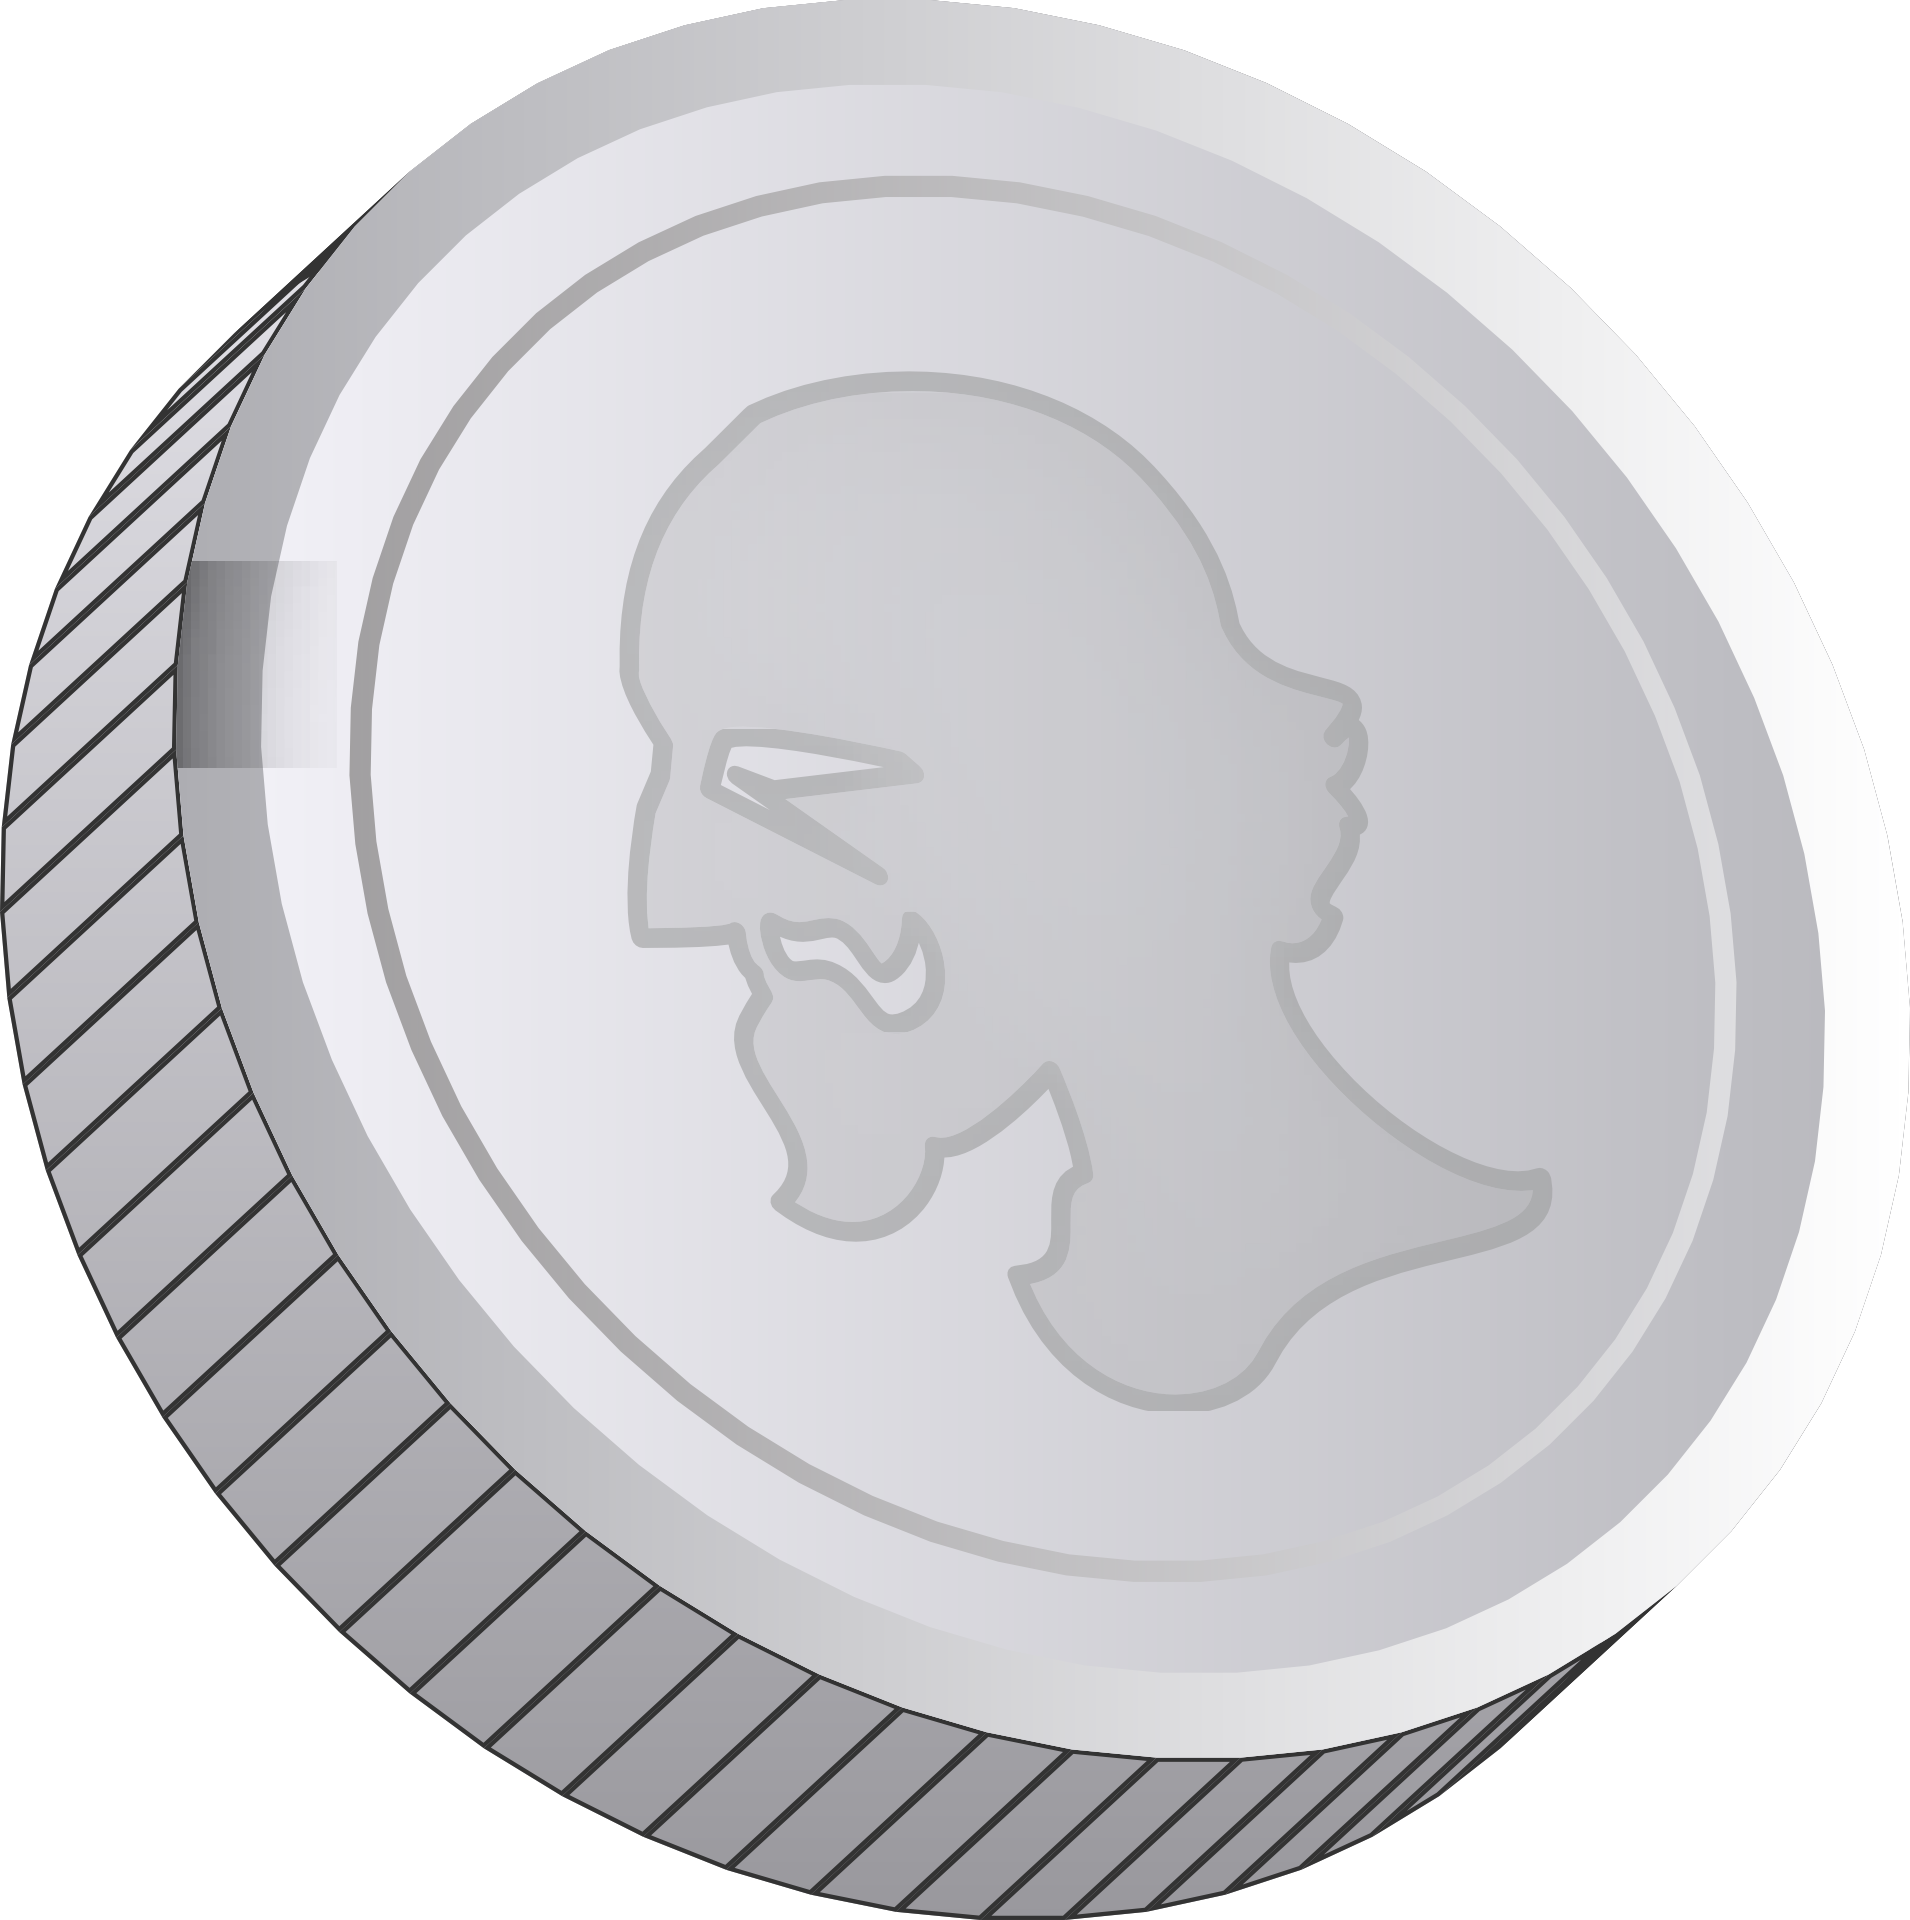 Silver coin with face on it clipart free image.